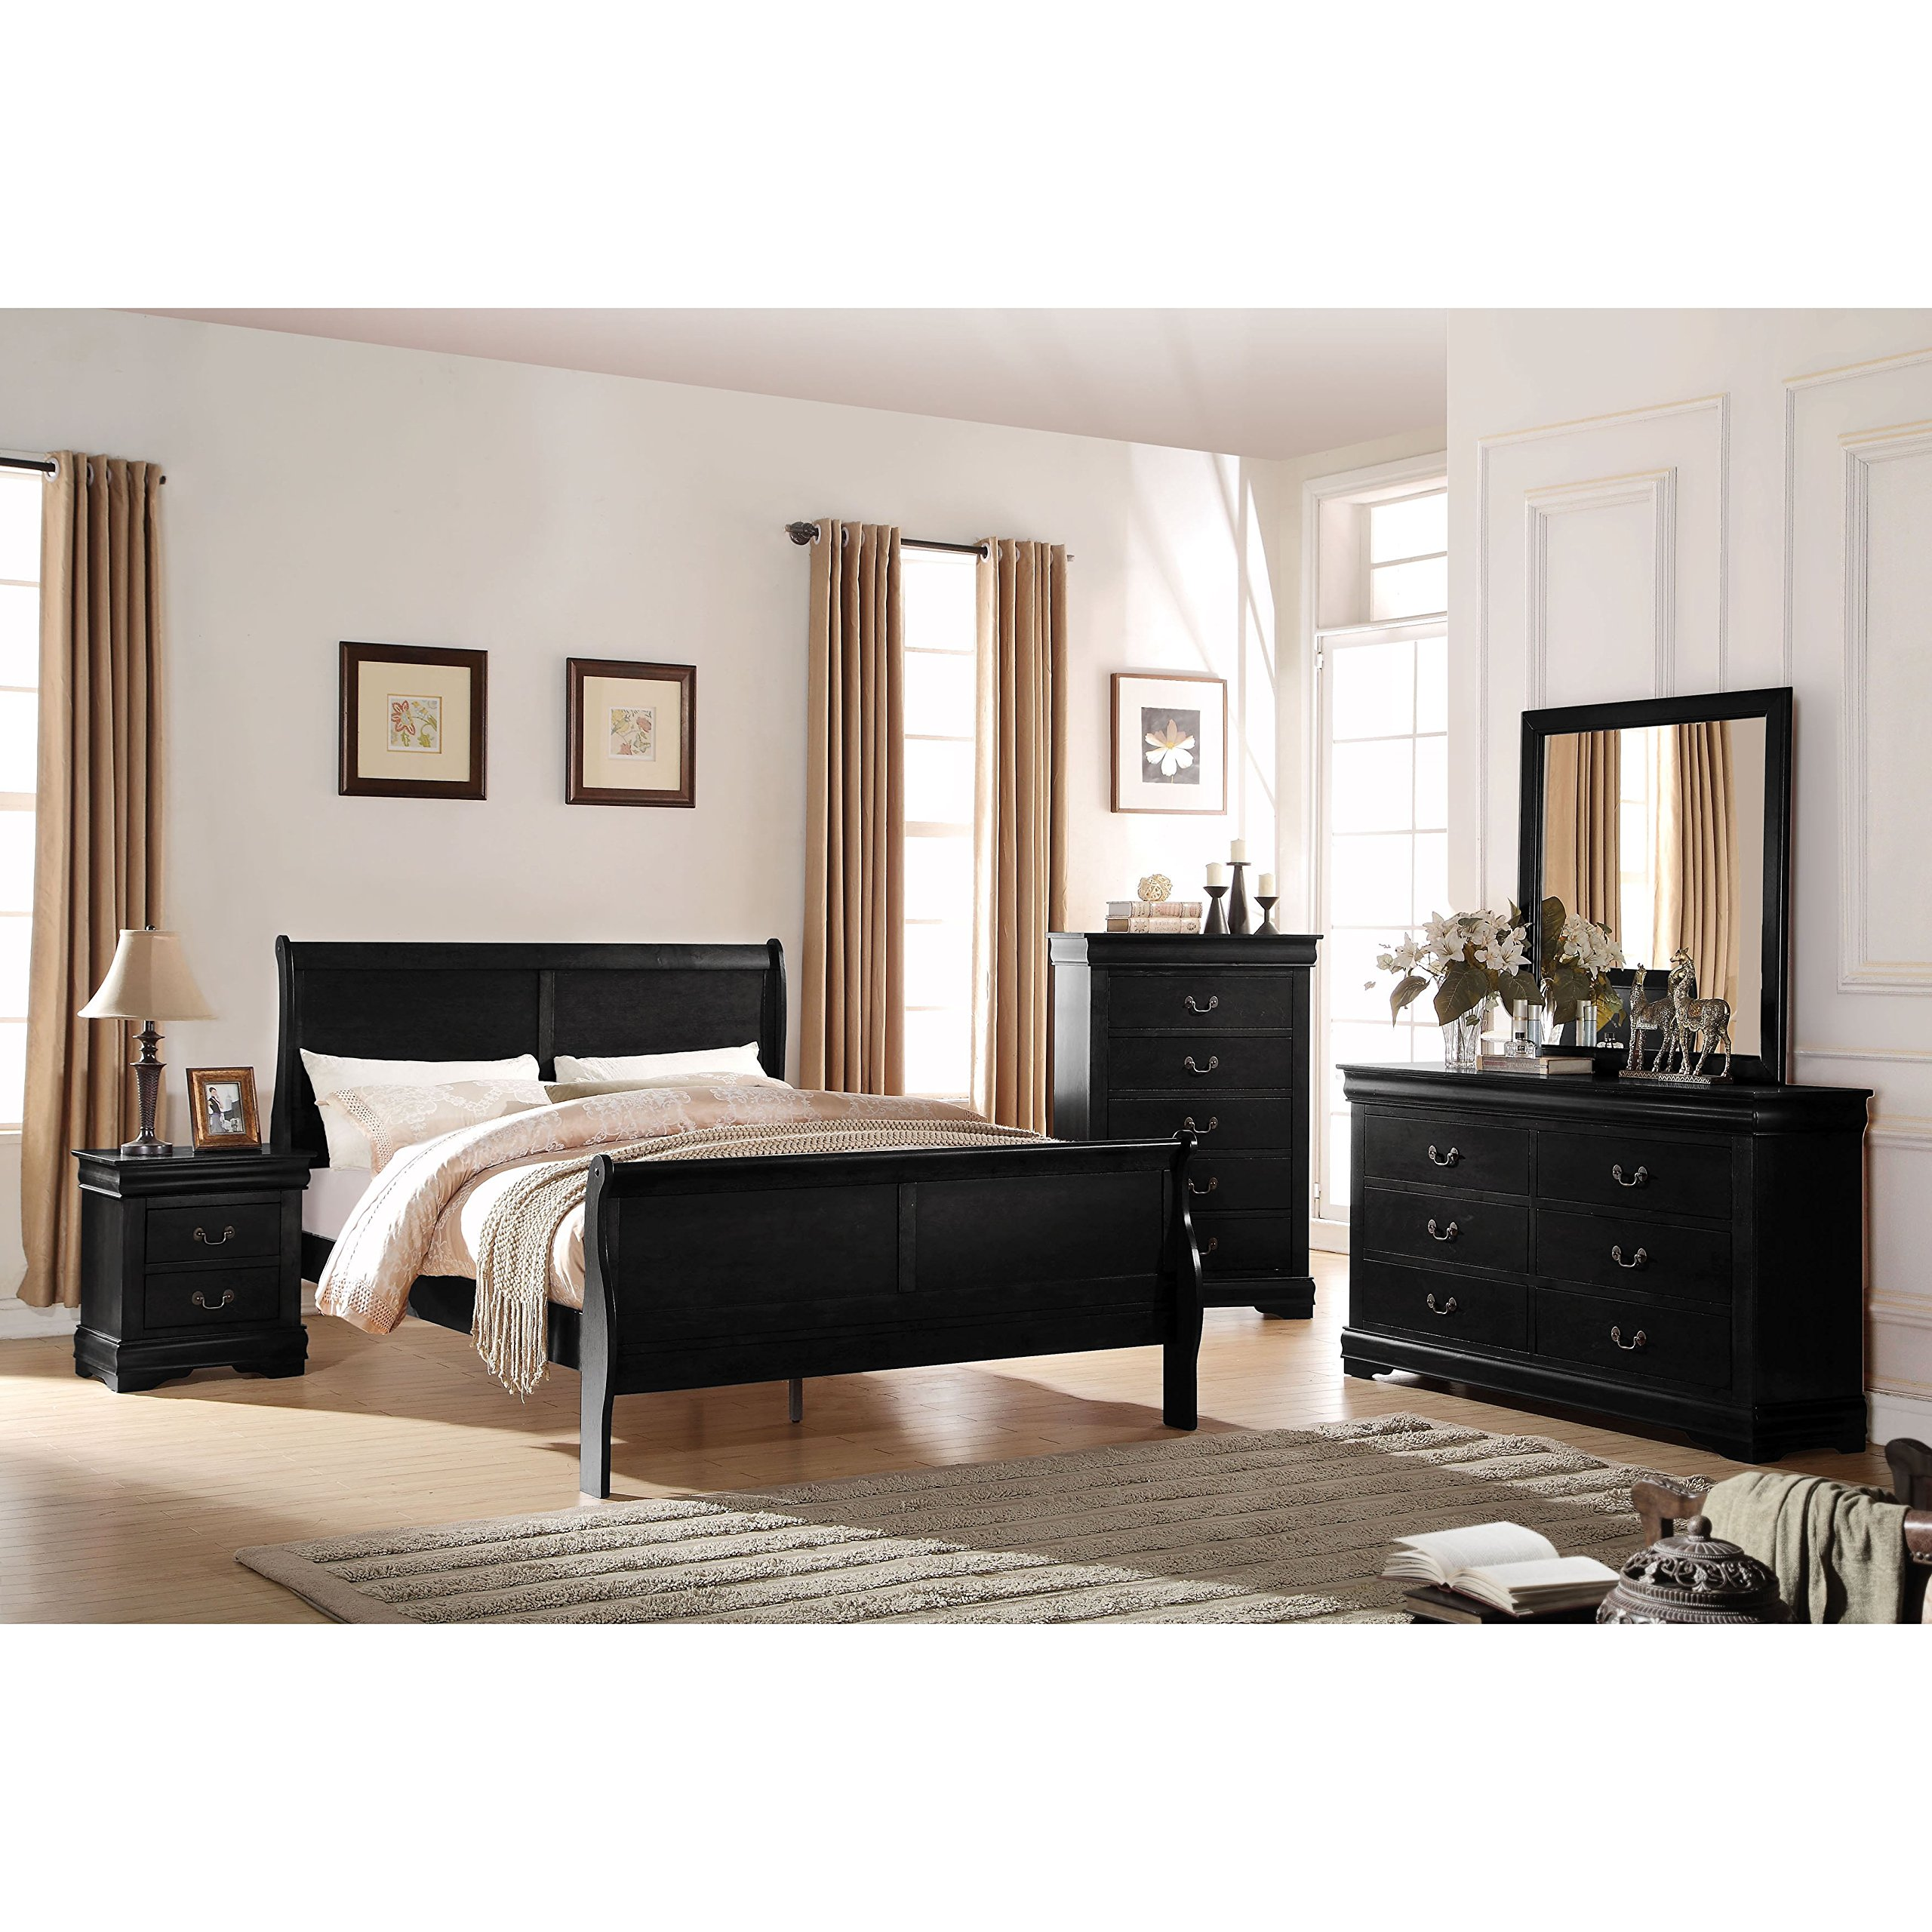 Acme Furniture Louis Philippe Black 4-Piece Sleigh Bedroom Set Twin